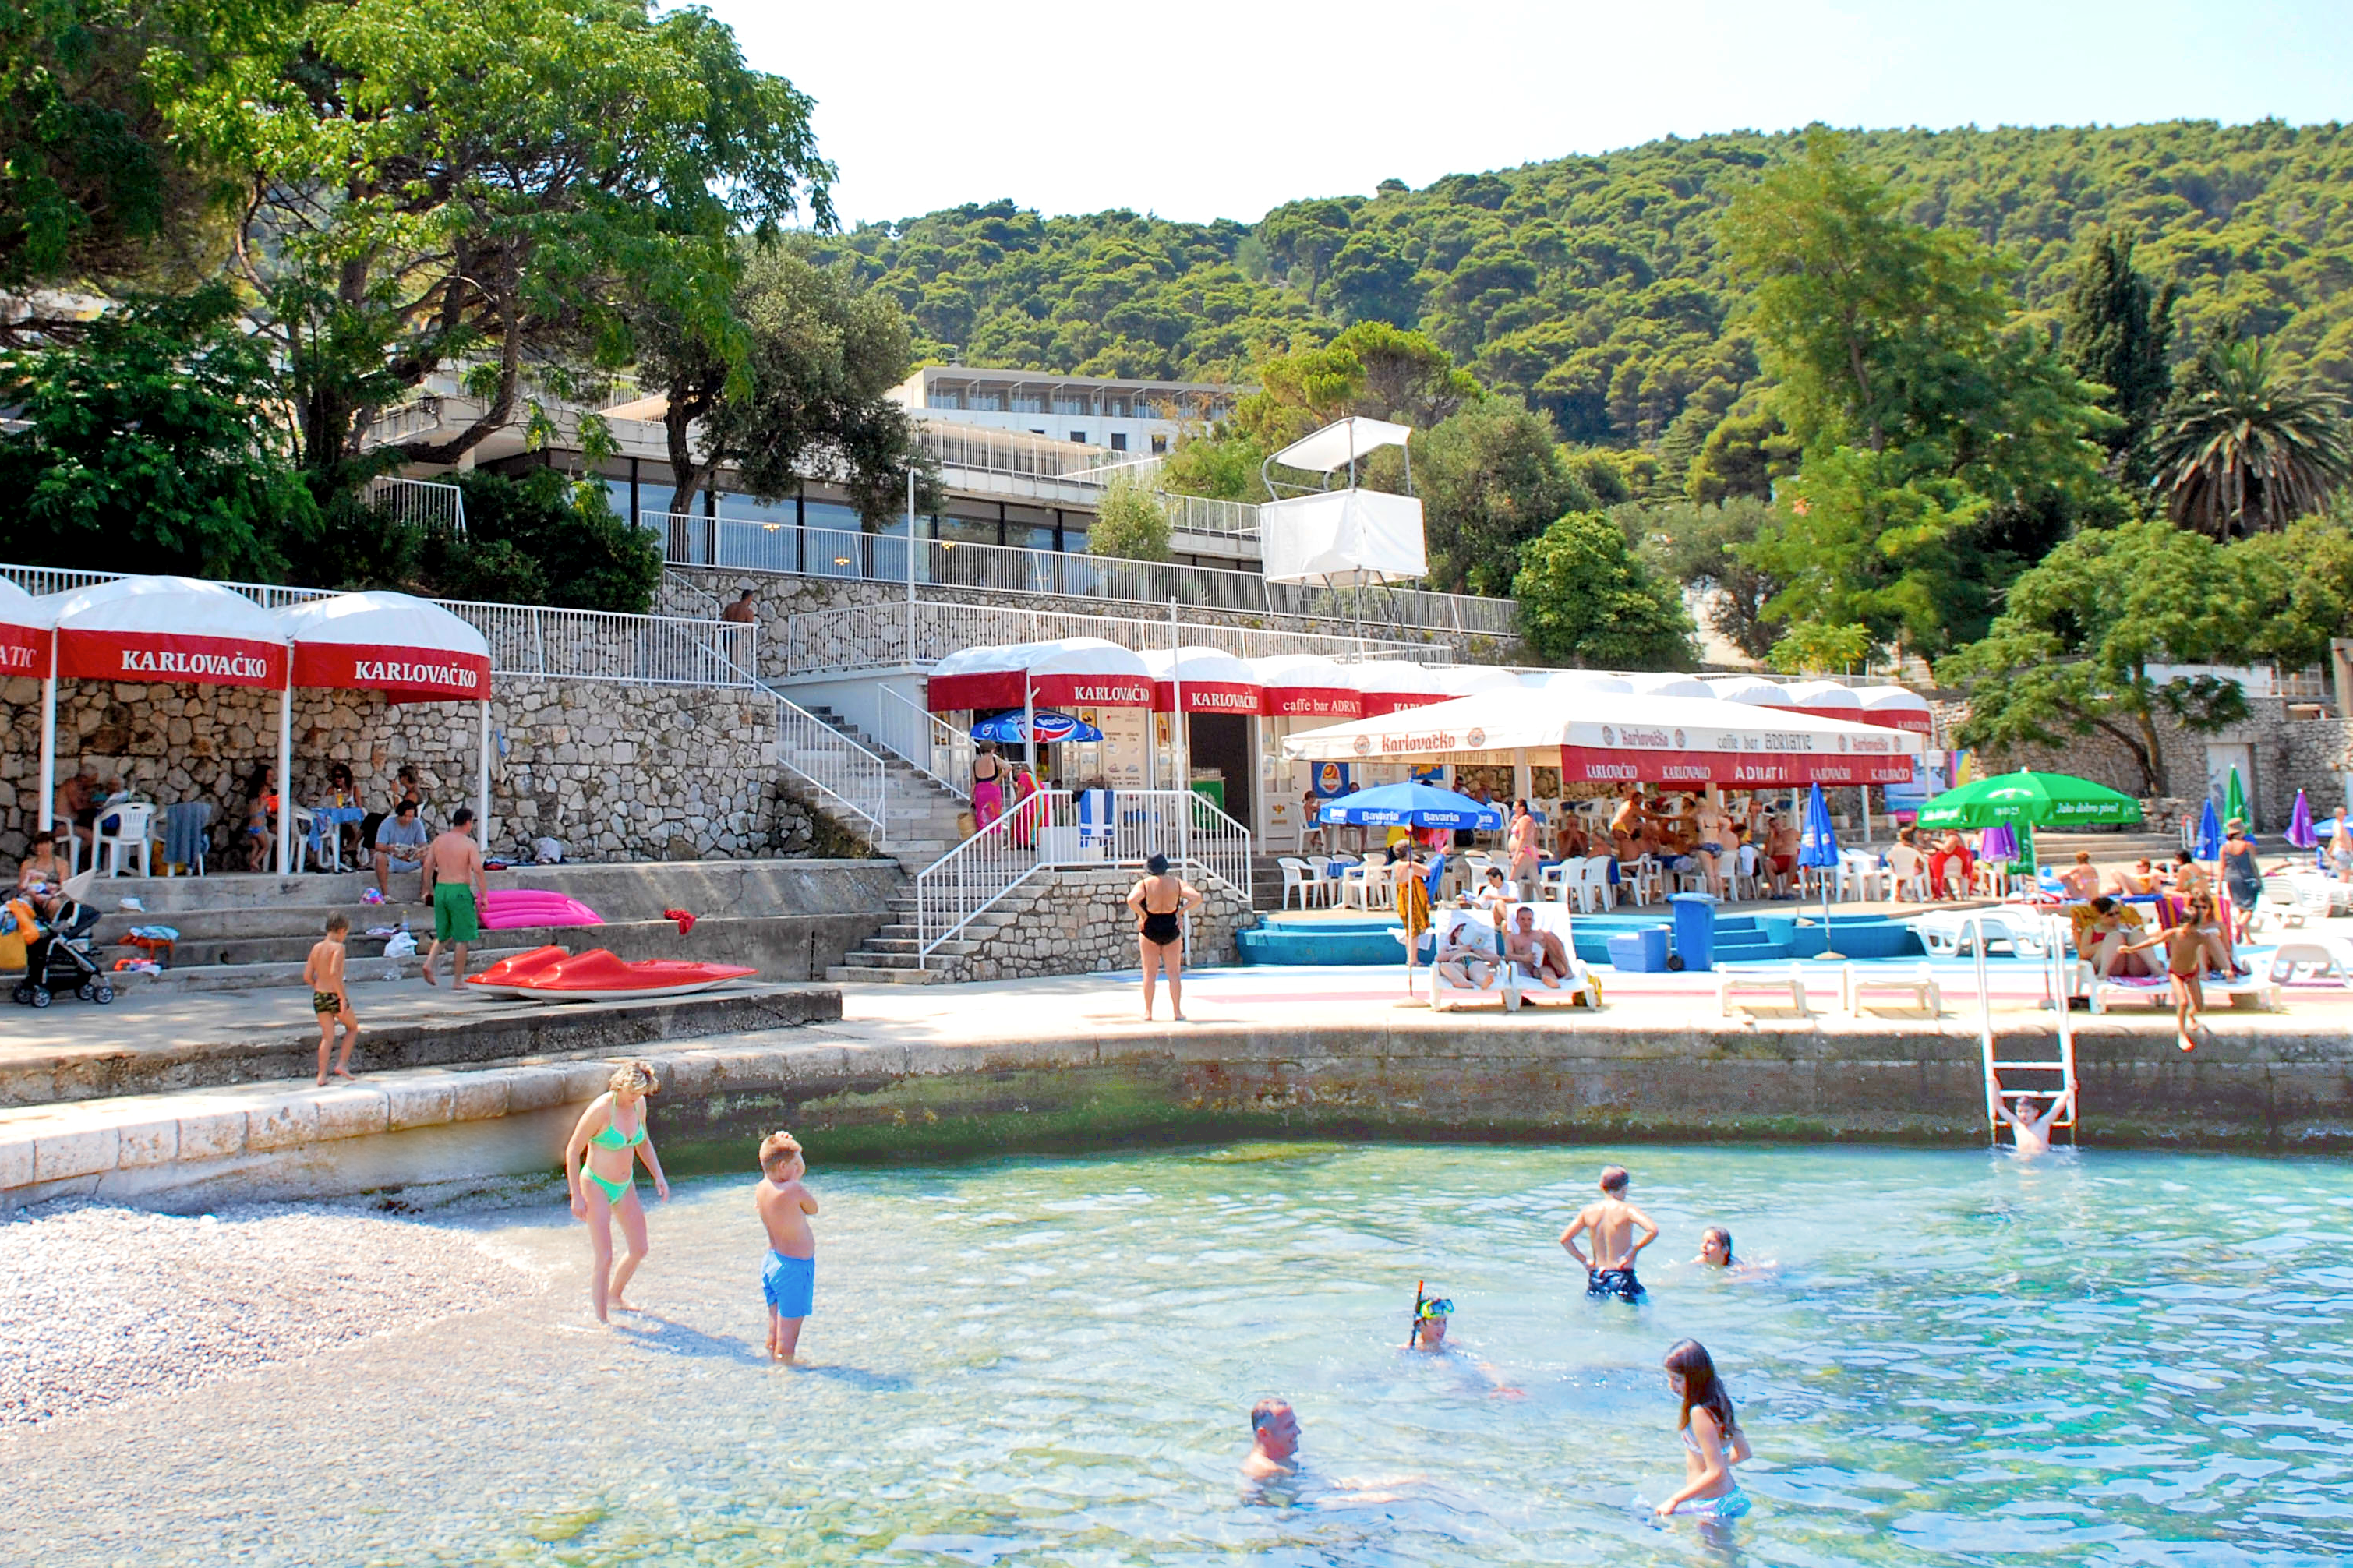 adriatic-beach-bar-sea